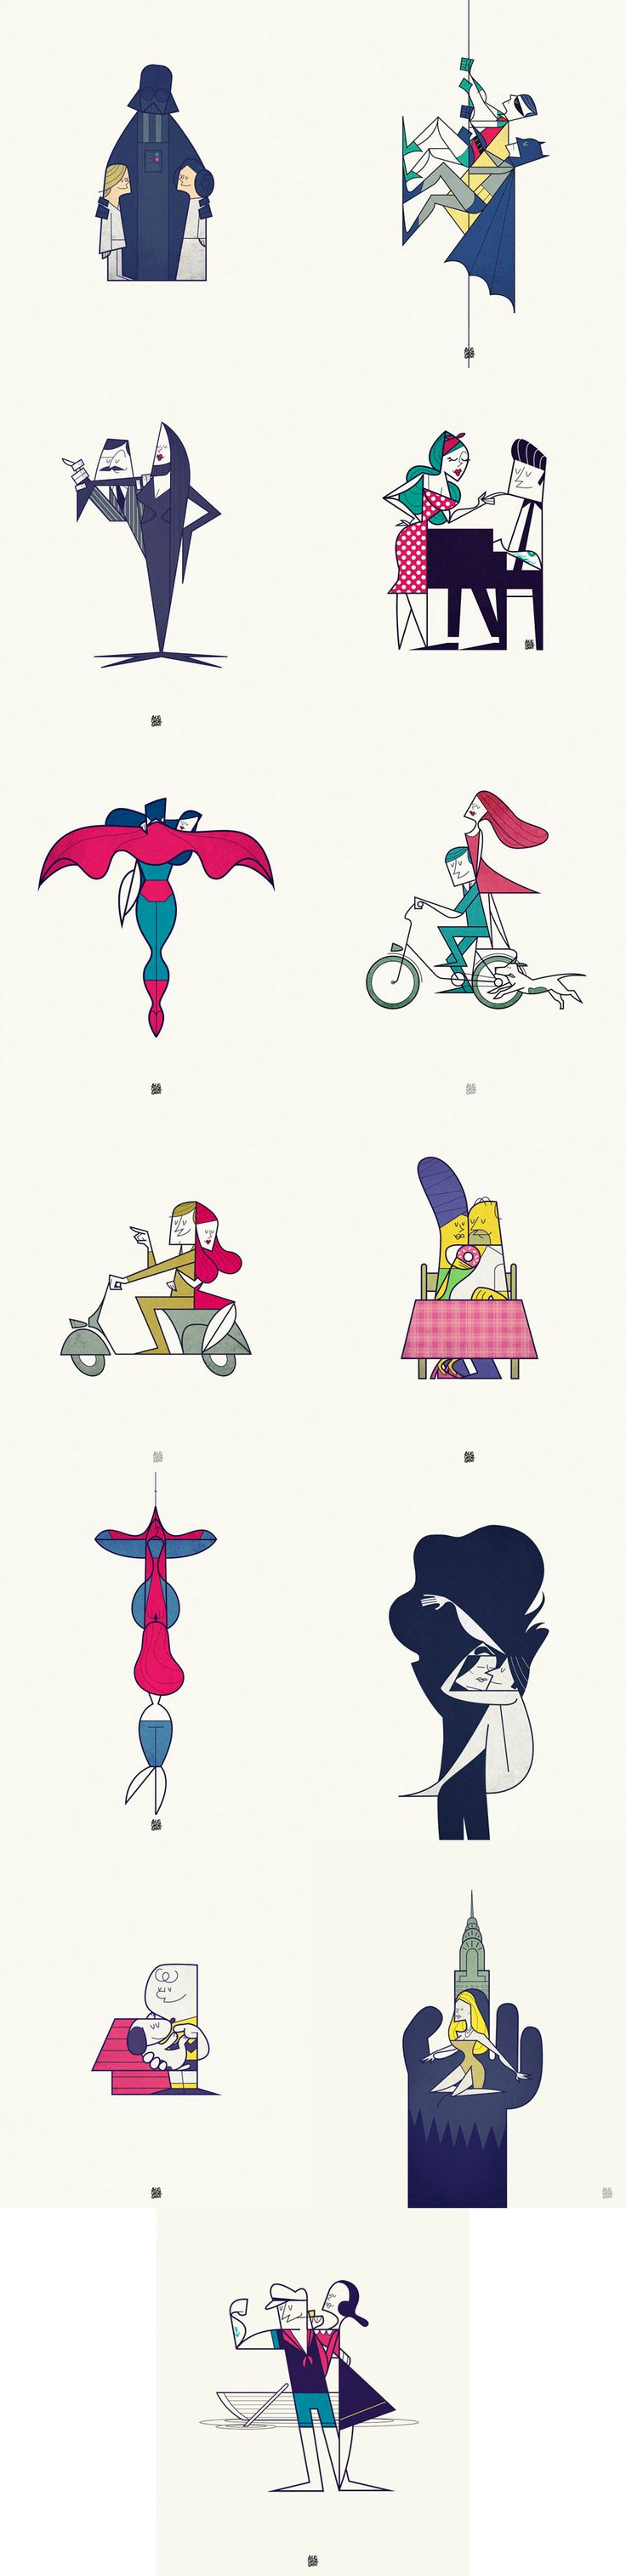 Famous Loves - Character Illustrations by Ale Giorgini